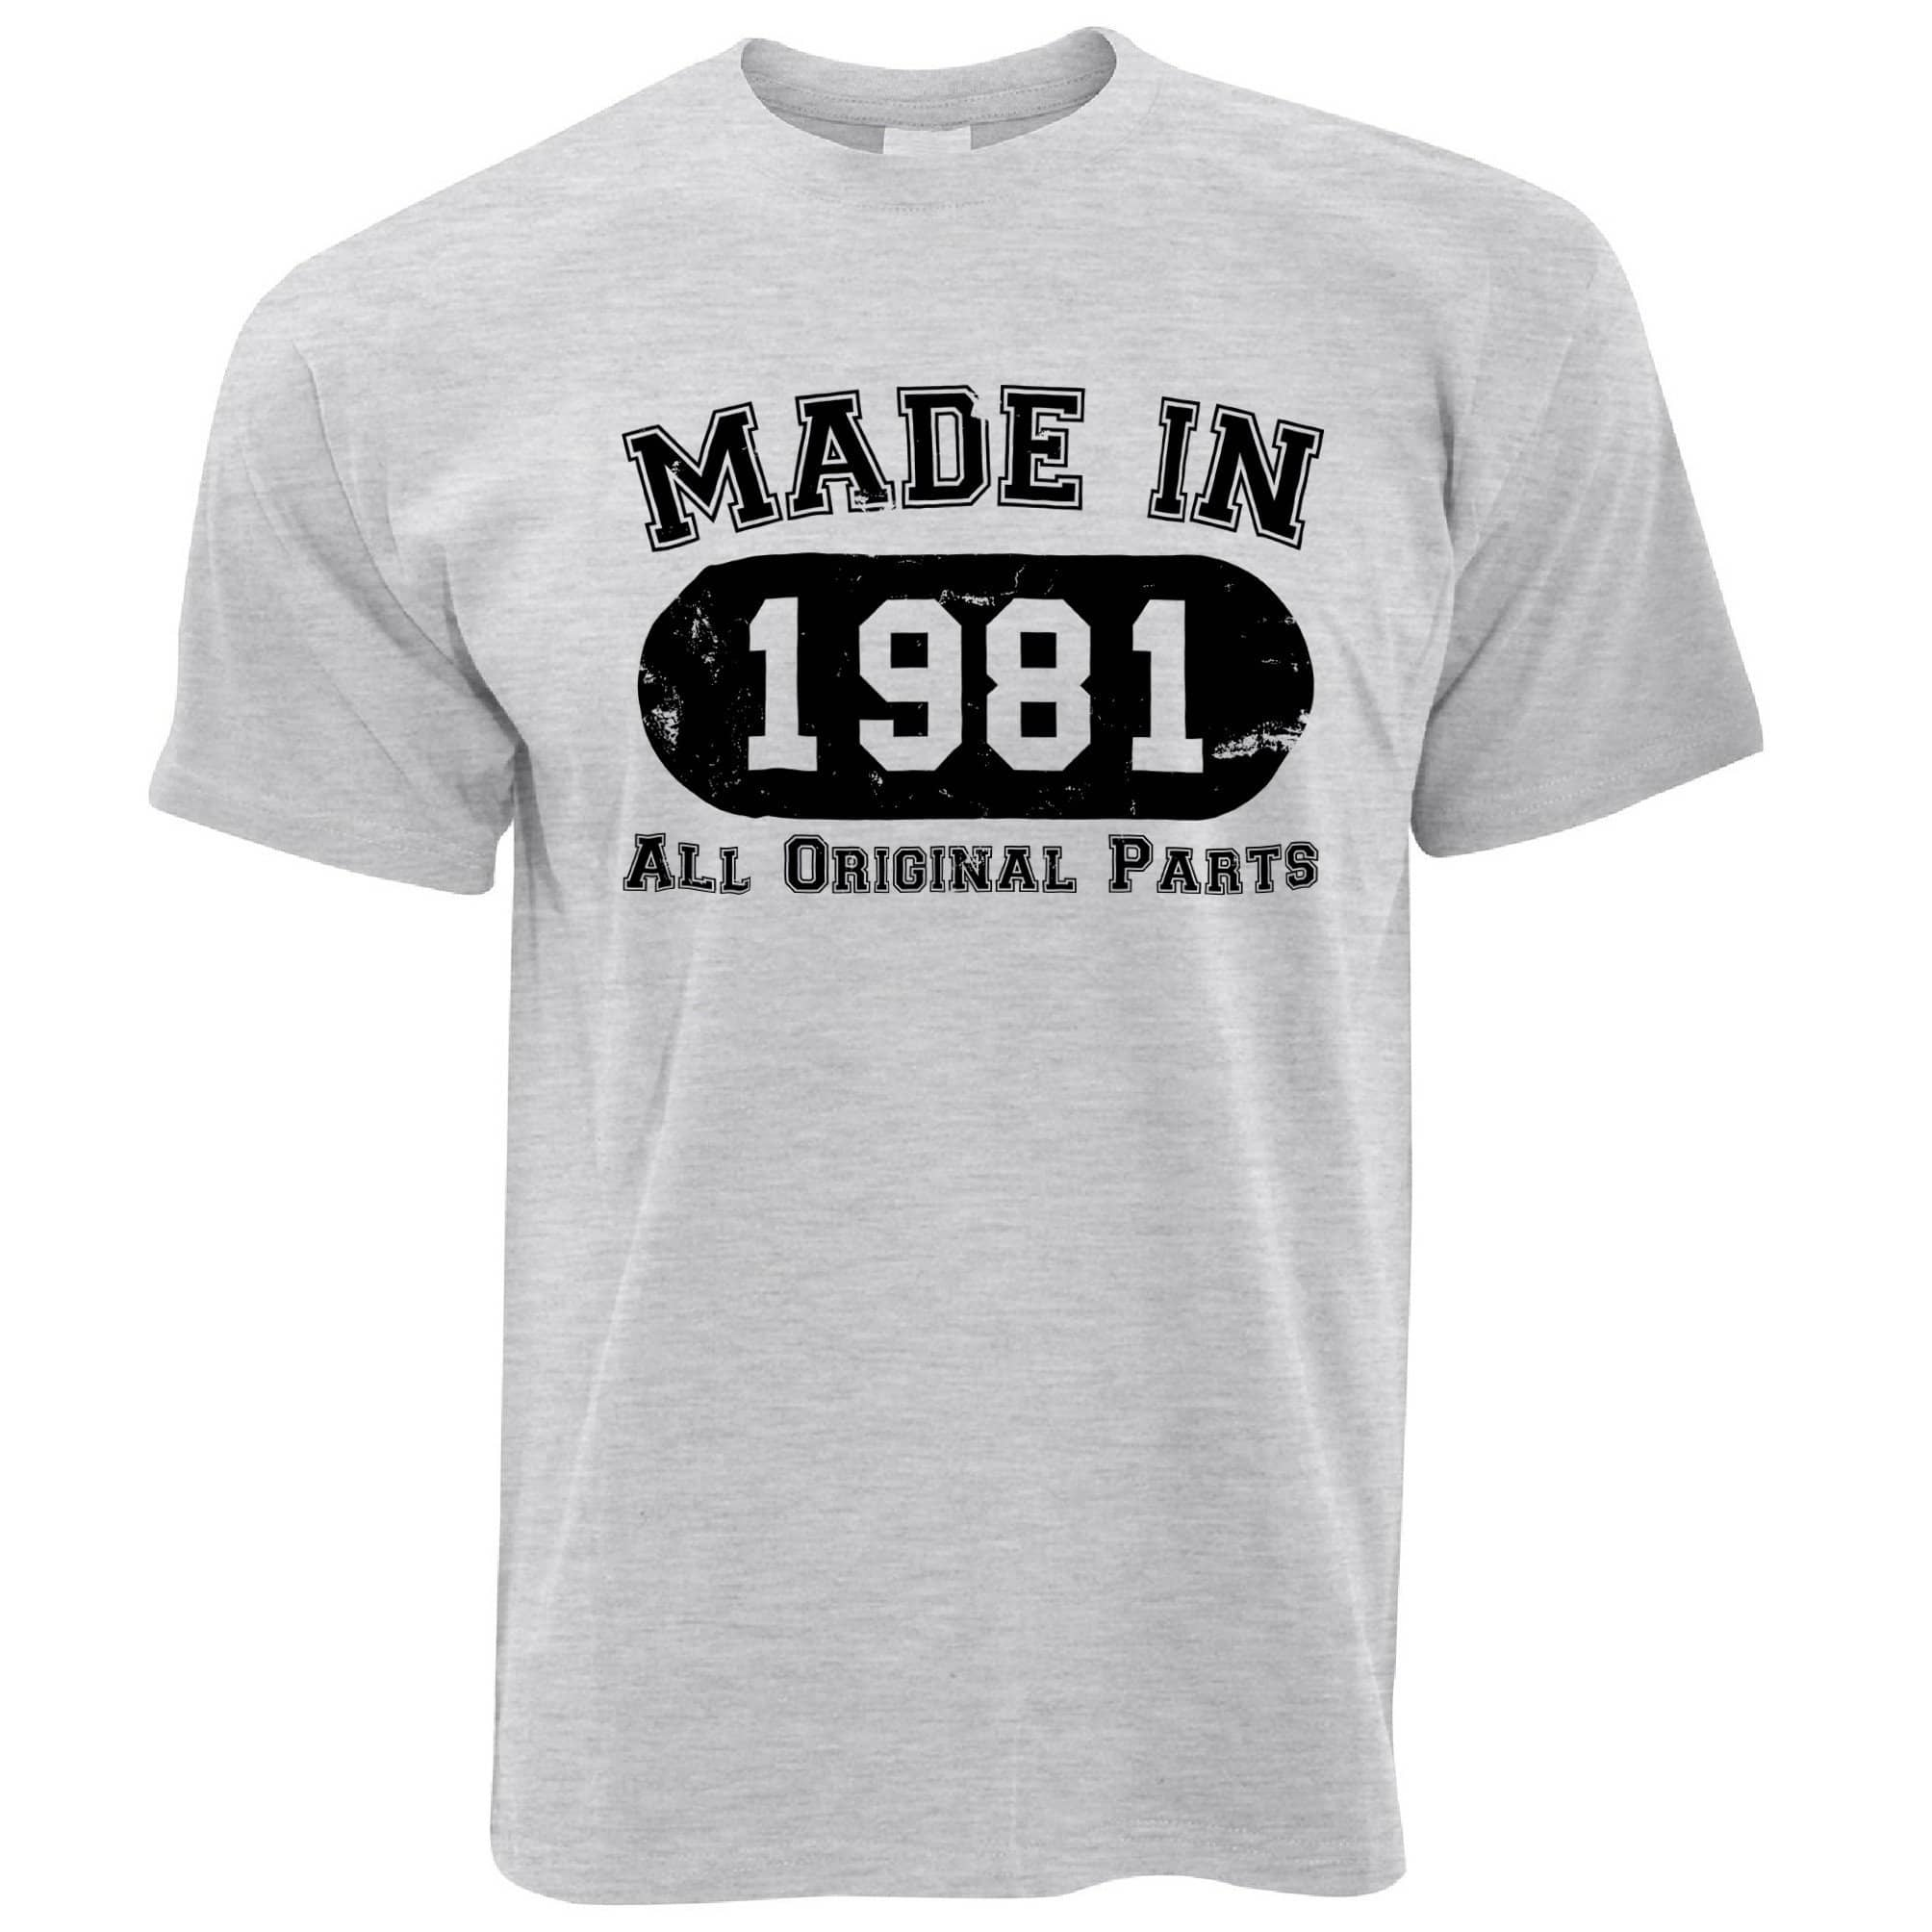 Made in 1981 All Original Parts Mens T-Shirt [Distressed]